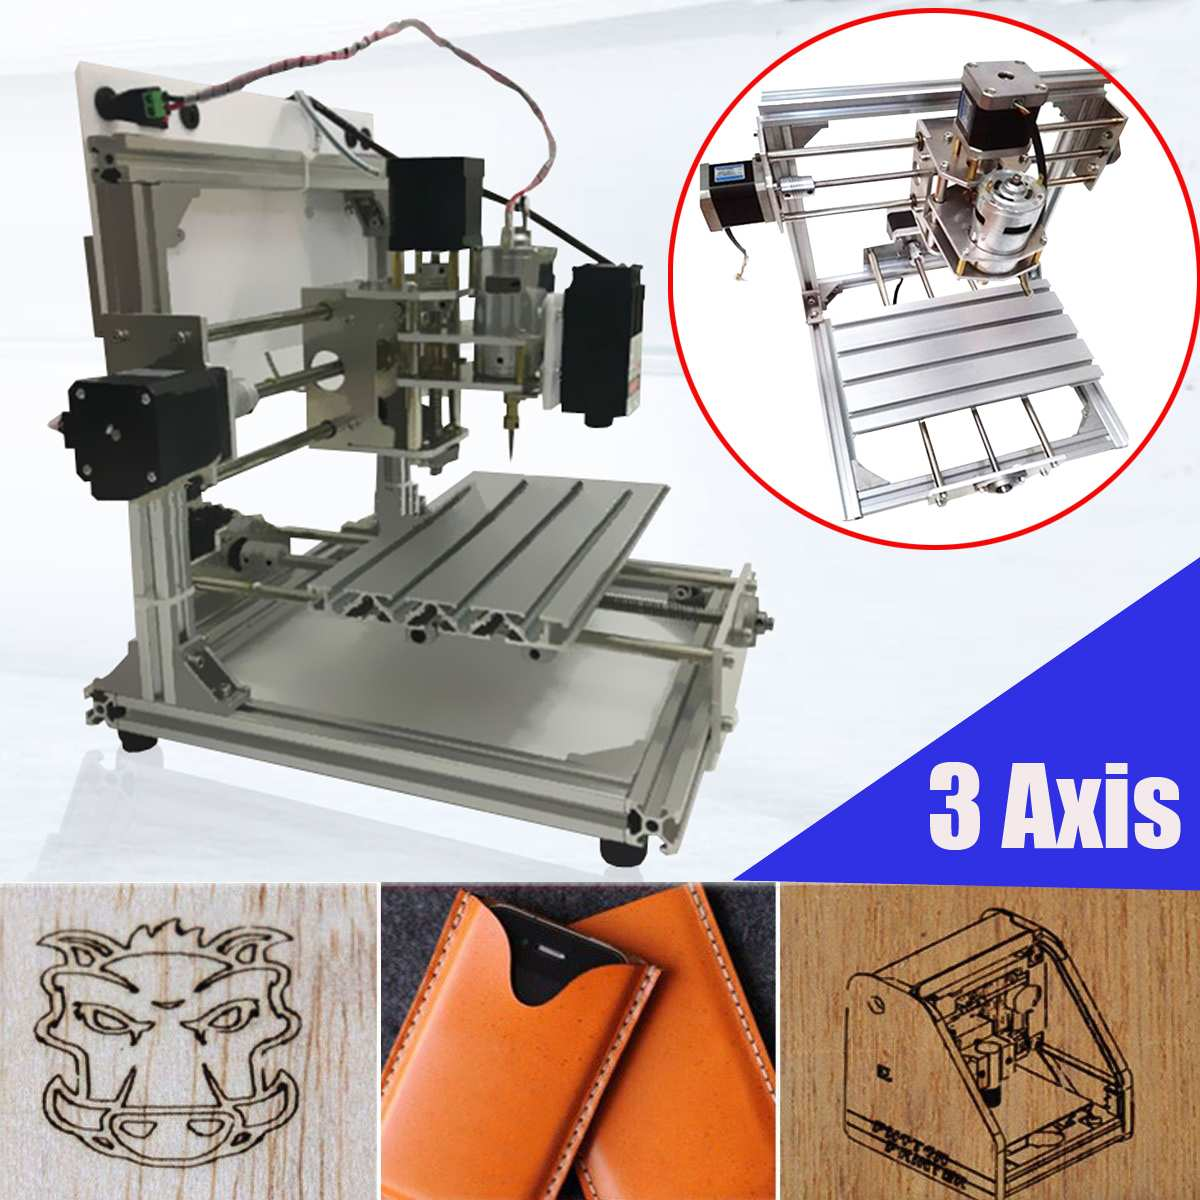 High Quality CNC 3  2020 Router DIY Wood Engraving Carving PCB Milling Machine DIY GRBL Wood Router Laser Engraving